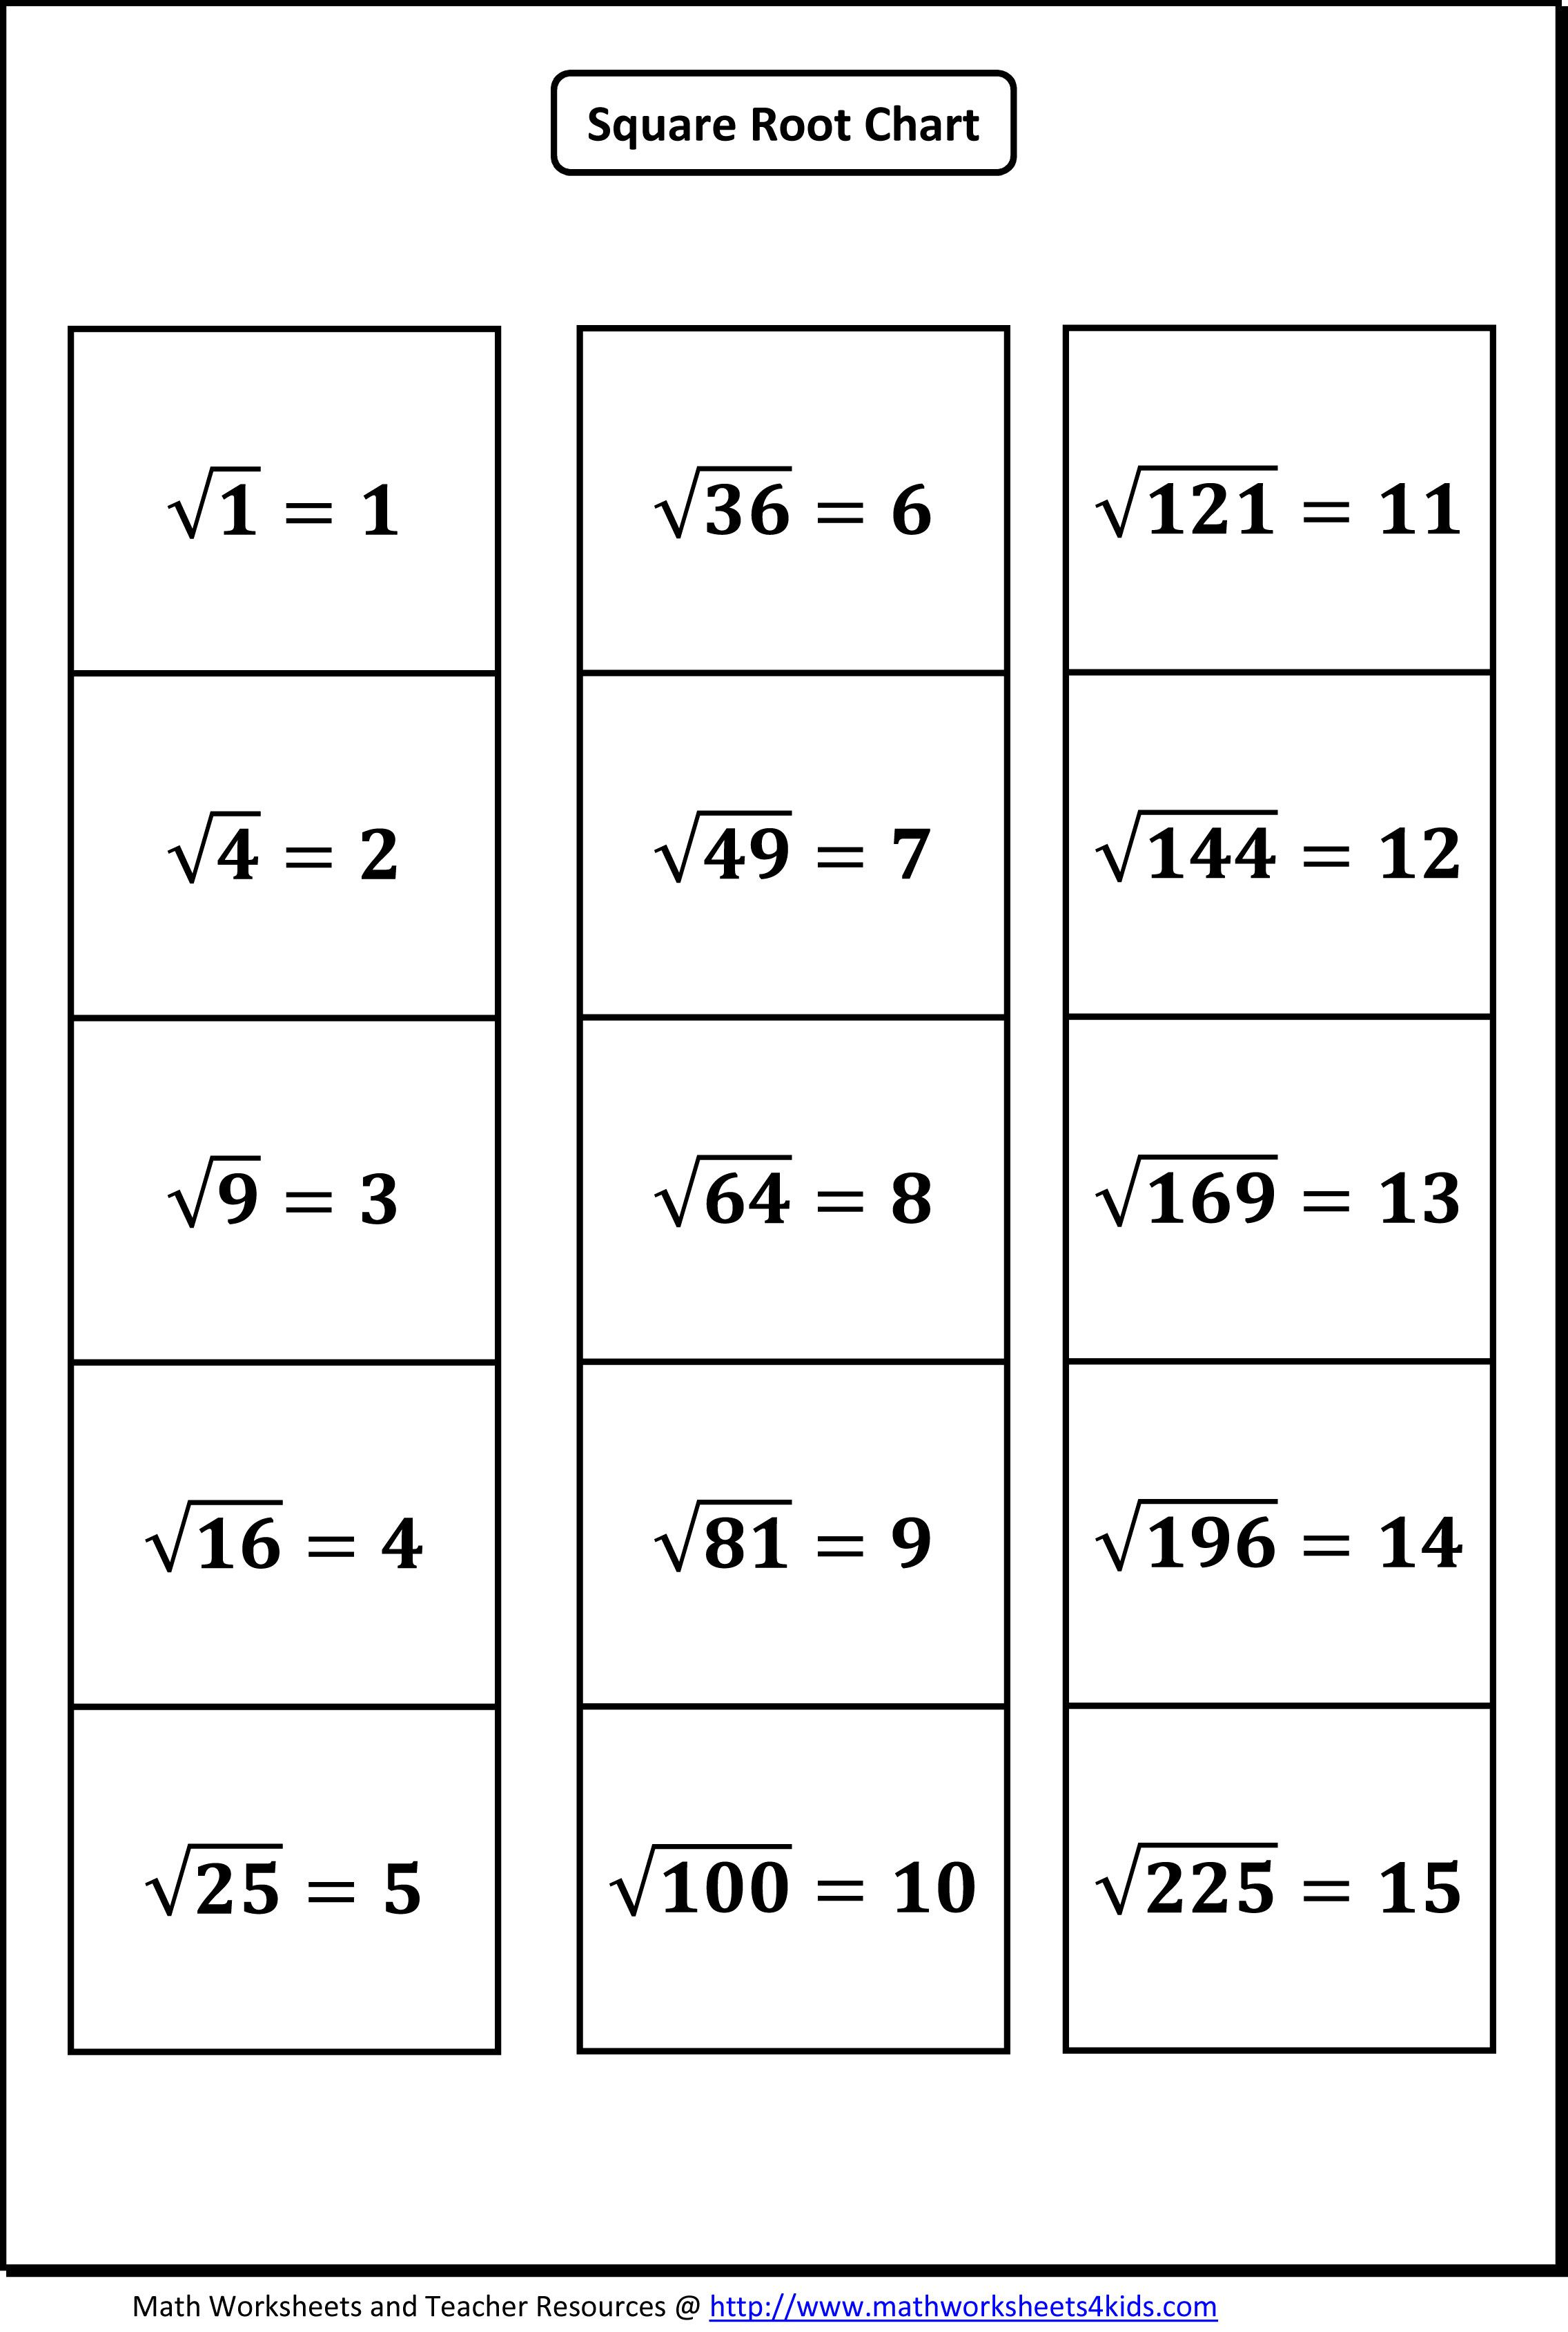 worksheet Properties Of Real Numbers Worksheets square root worksheets find the of whole numbers fractions and decimals